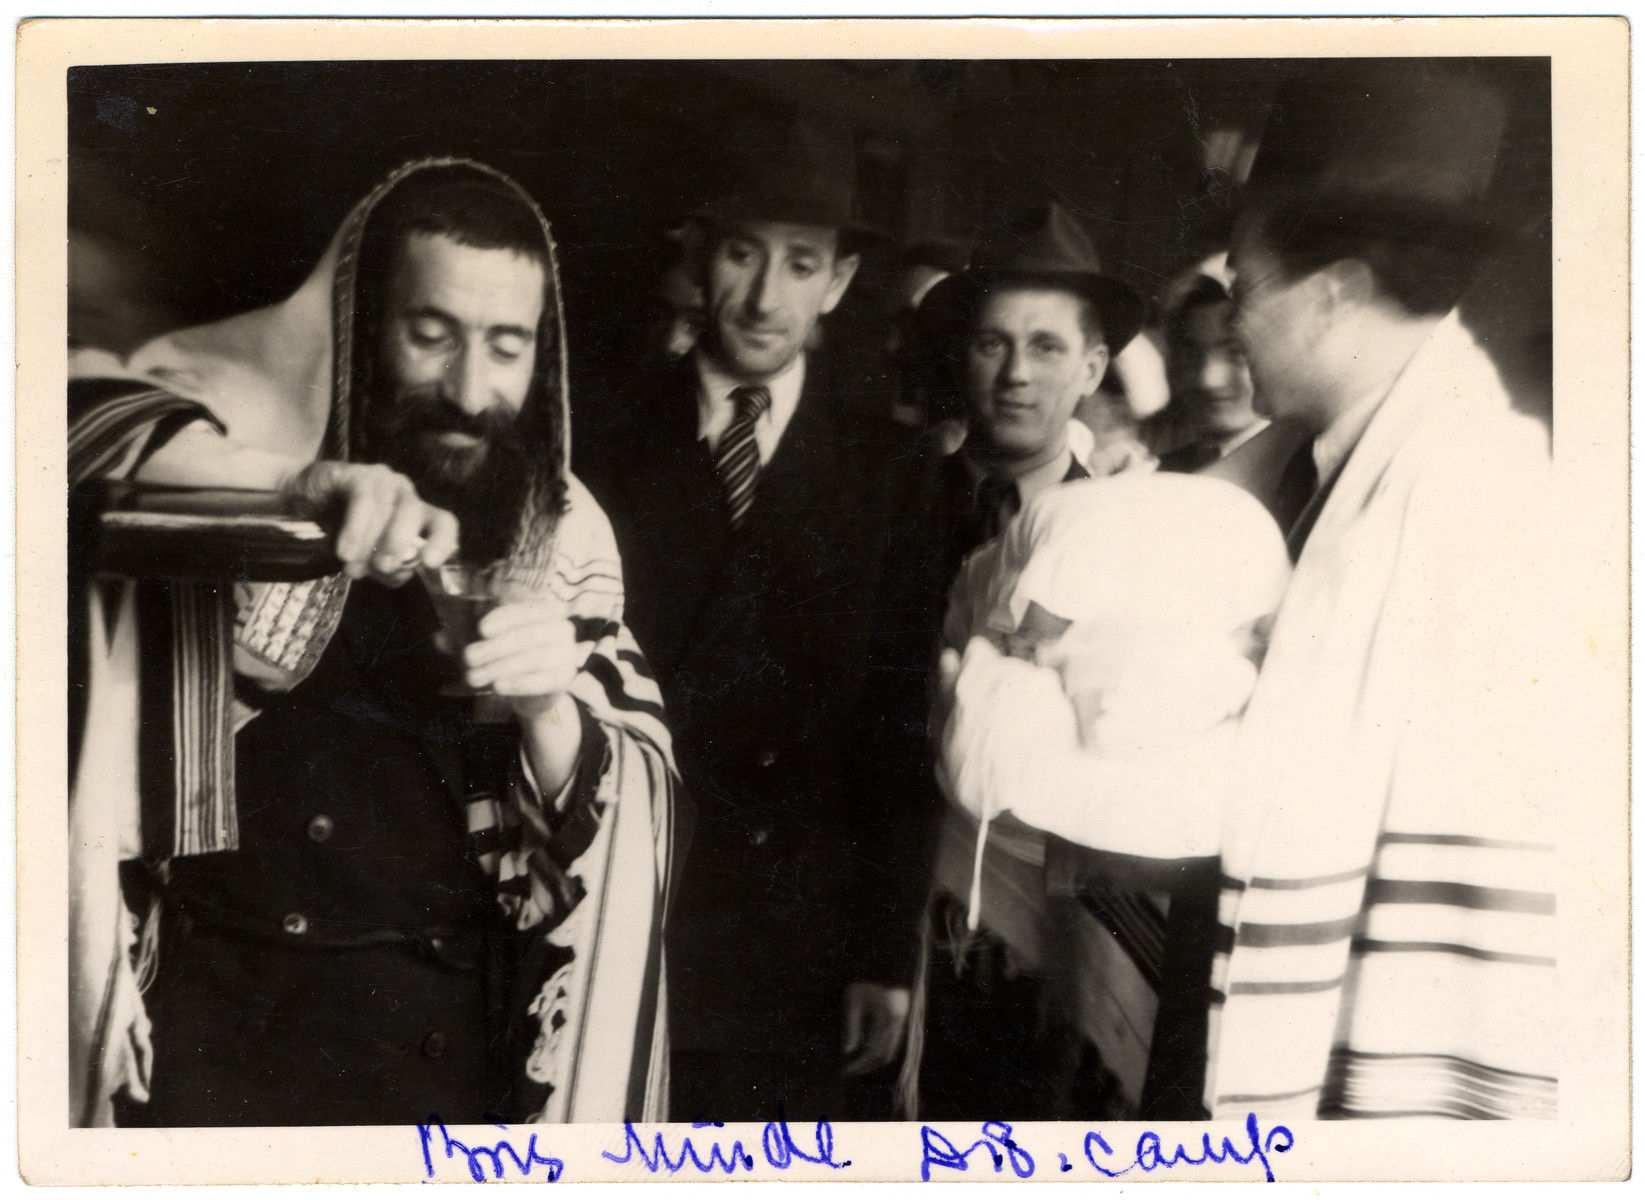 A mohel pours a glass of wine in advance of performing a brit milah (ritual circumcision) in the Feldafing displaced persons' camp.